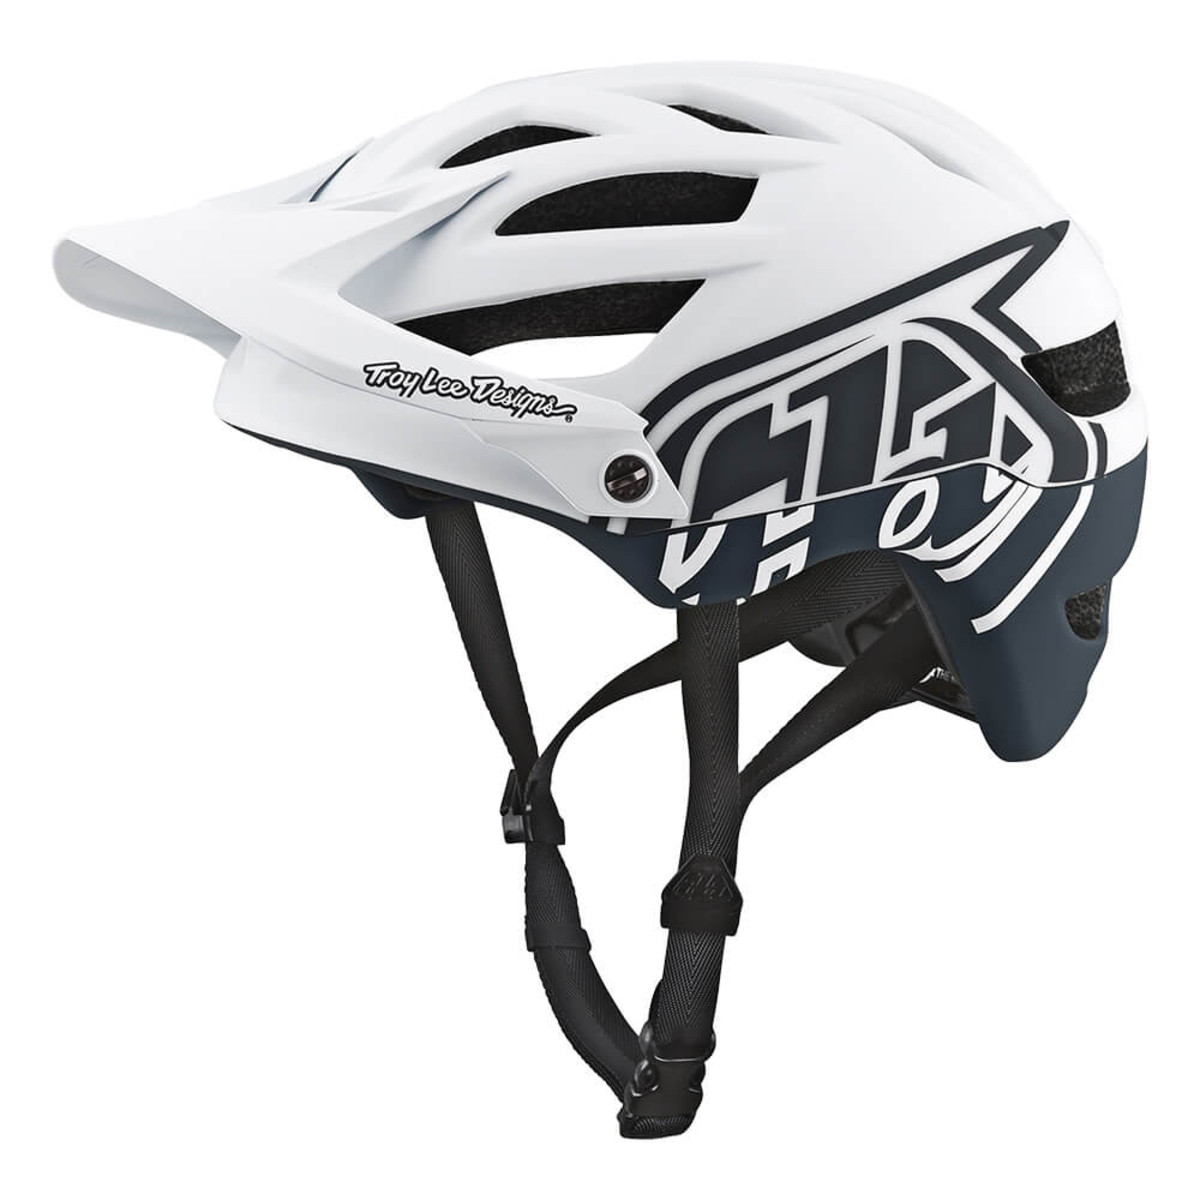 troy lee a1 drone helmet with Tld Troy Lee Designs A1 Helm Drone Weiss Grau on Troy Lee Designs A1 Helmet also Tld Troy Lee Designs A1 Helm Drone Weiss Grau additionally First Look 2015 Troy Lee Designs A1 D2 And D3 Helmets besides Troy Lee Designs A1 Casco All Mountain Casco Mod 2016 Pd48b6d8b33181aee580c7028dce67636 besides Troy Lee Designs Professional Motorcycle Riders Team Ktm Factory Ktm Motocross Supercoss Riders 2016.